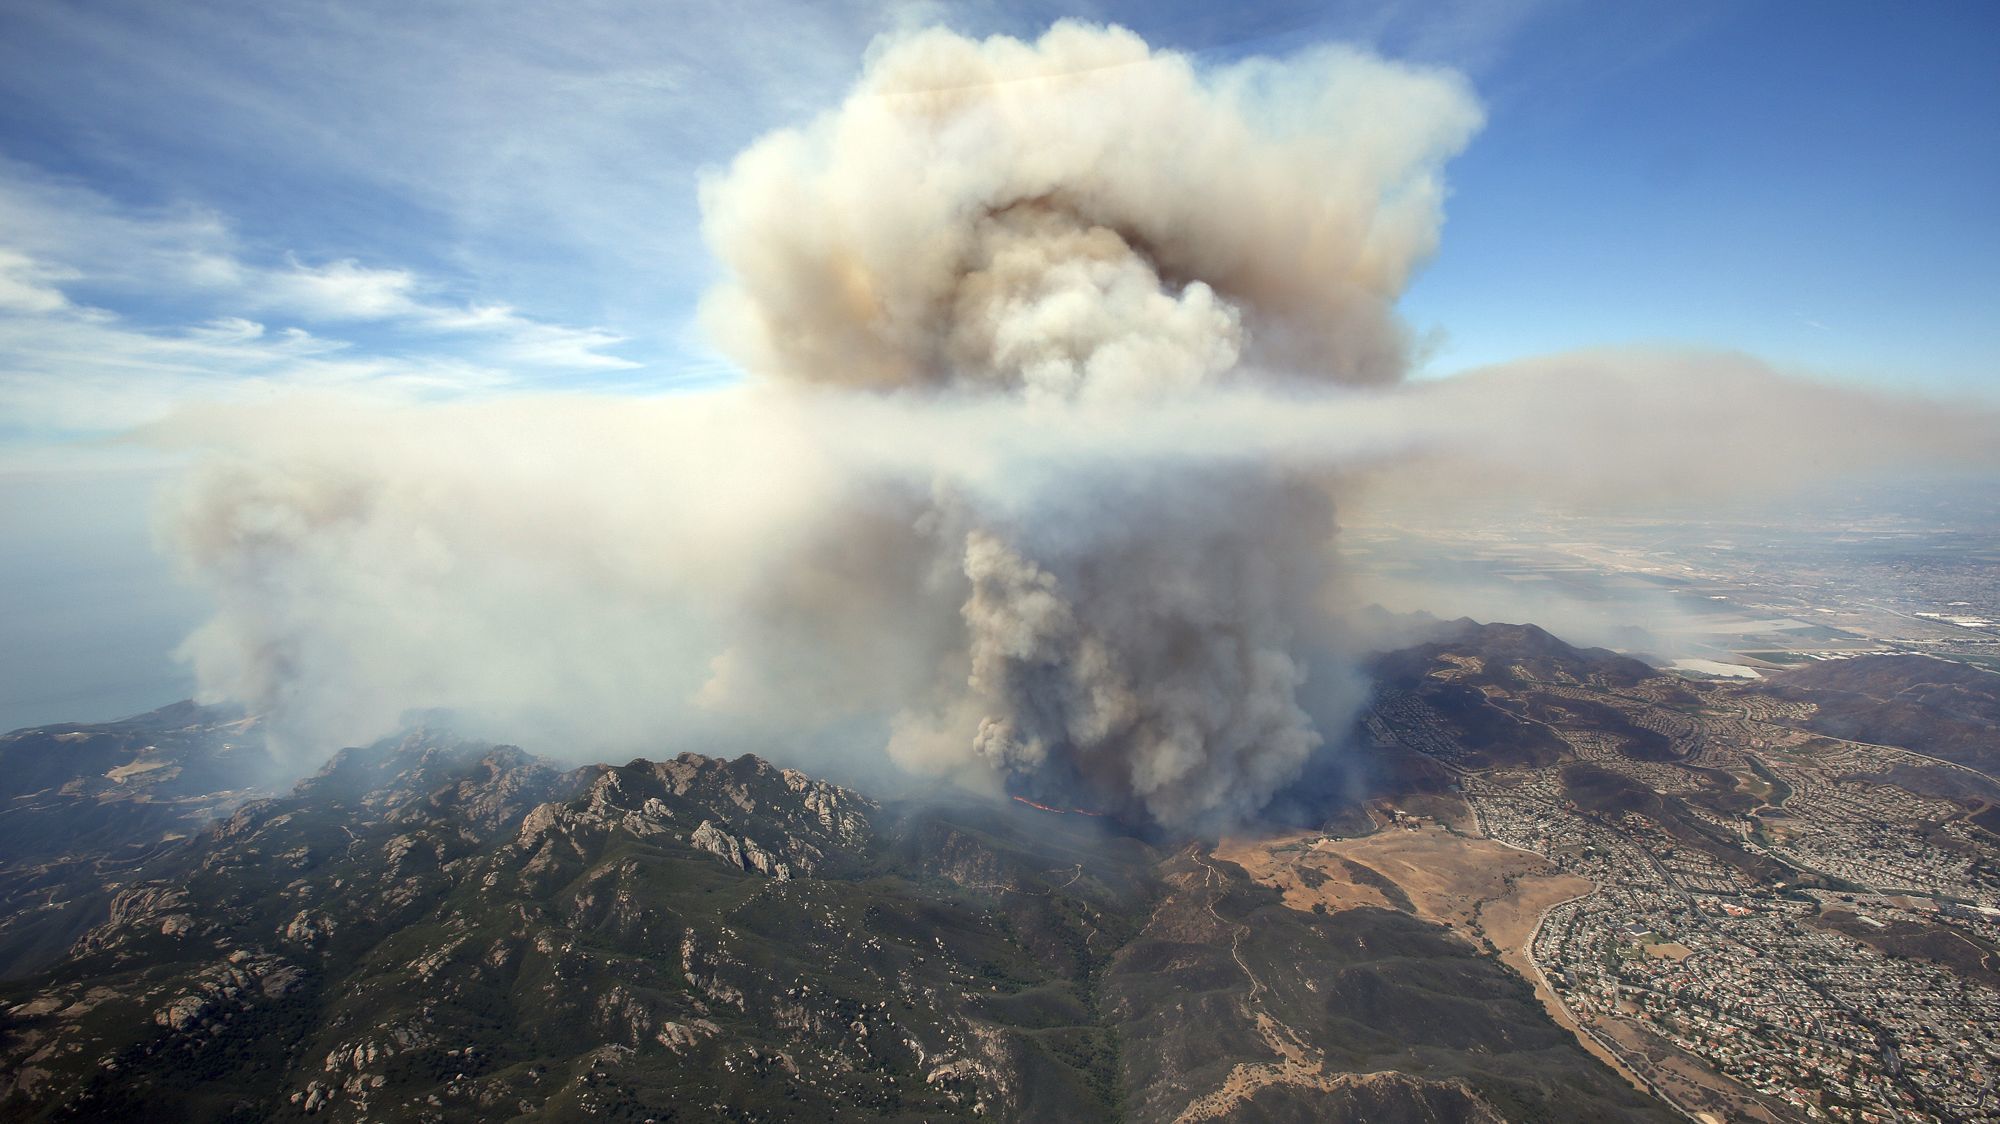 Aerial view of the Springs fire burning in the Santa Monica Mountains between Malibu and Newbury Park in 2013.